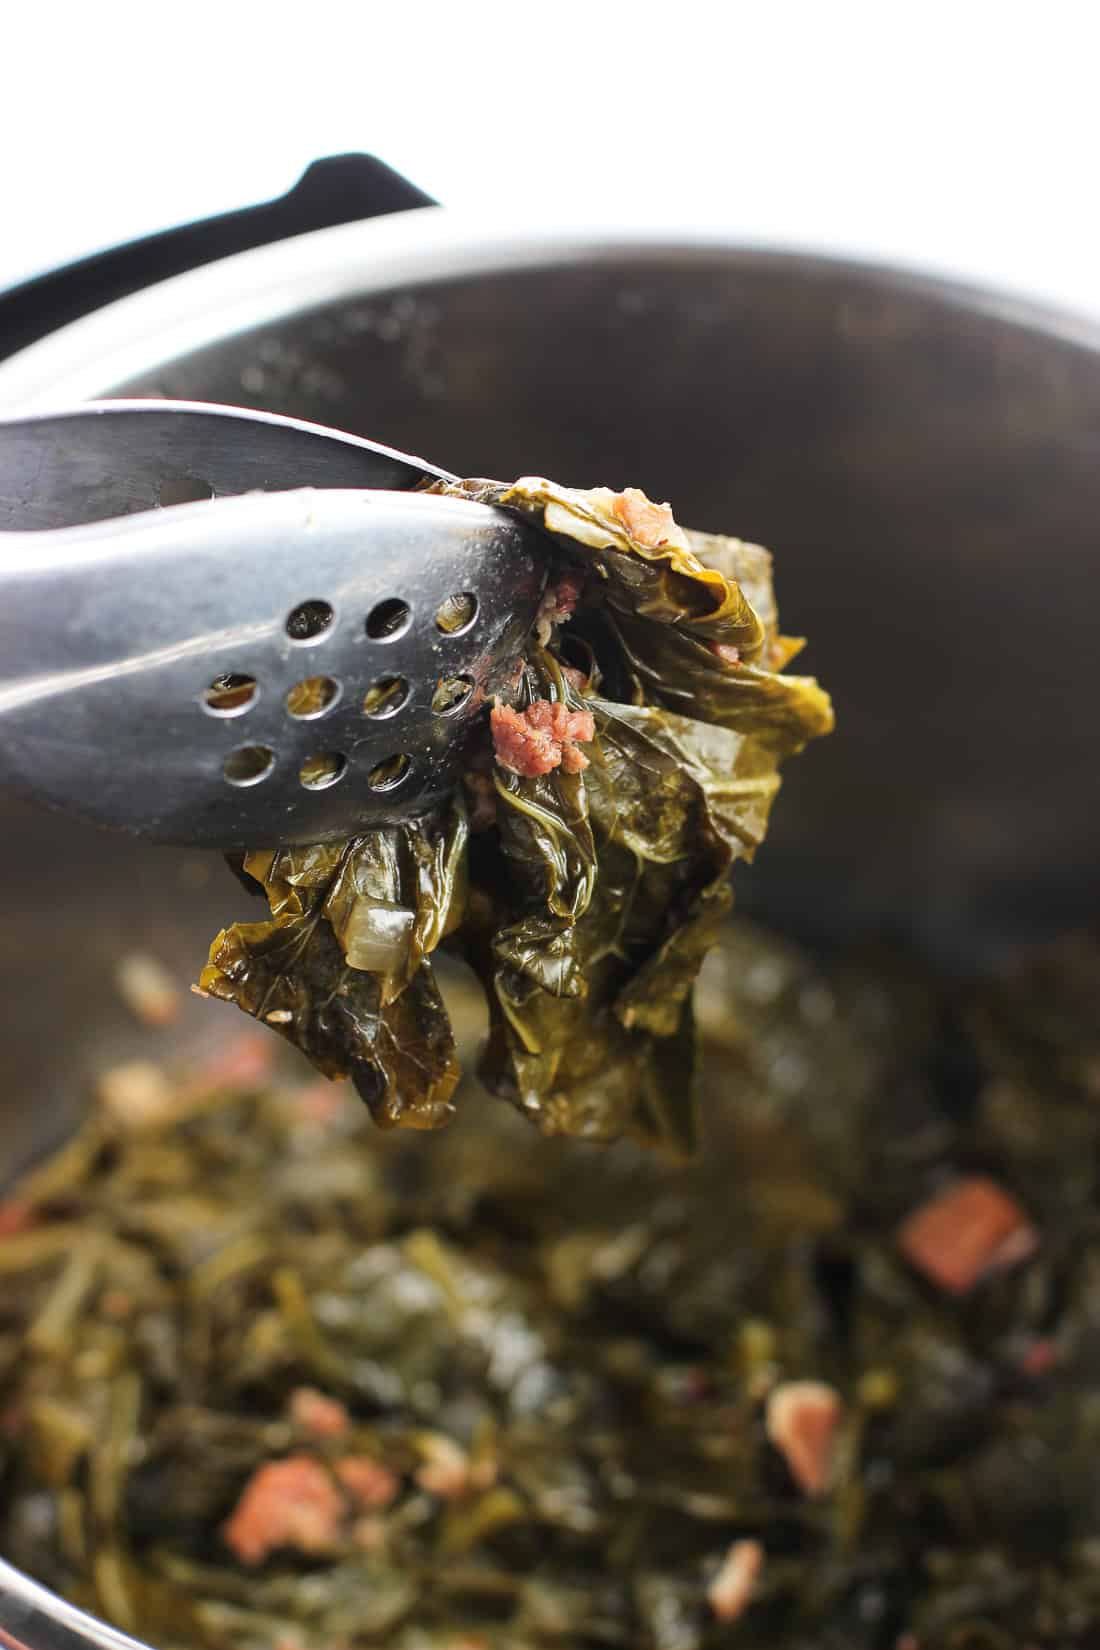 Tongs lifting collard greens out of the Instant Pot.